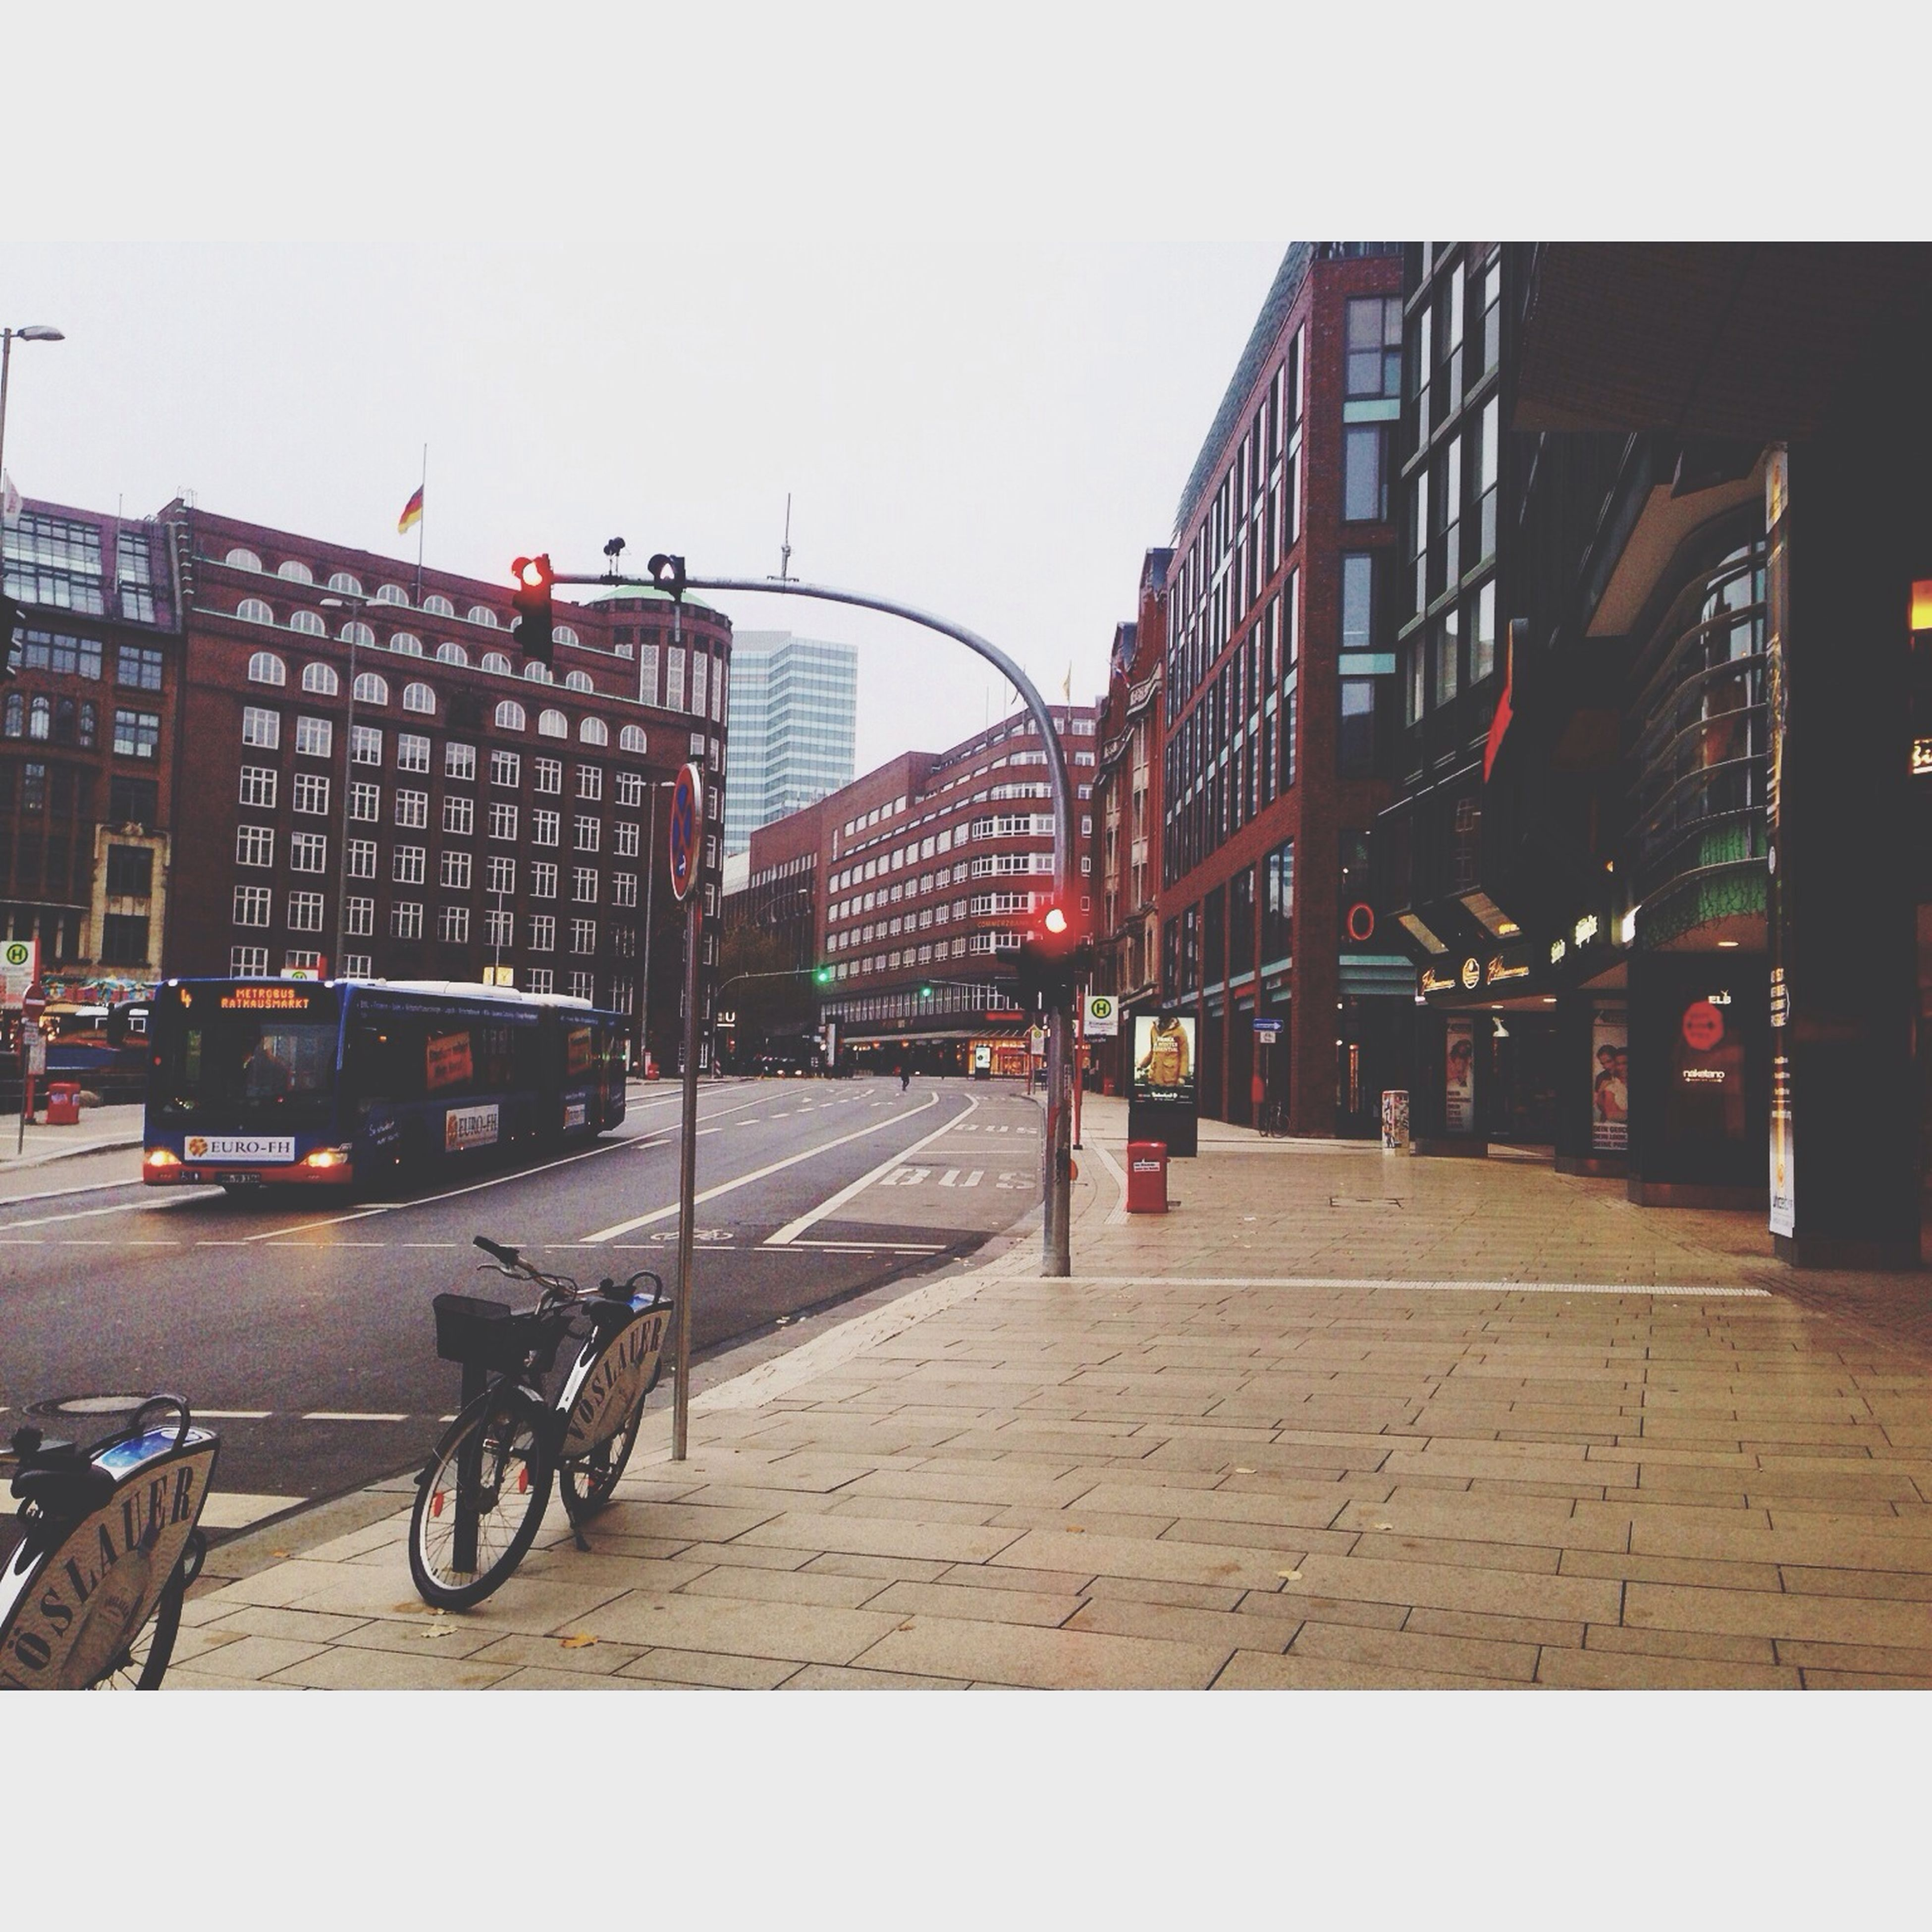 building exterior, architecture, built structure, transportation, city, mode of transport, clear sky, street, land vehicle, street light, bicycle, car, city life, the way forward, city street, building, incidental people, sky, road, diminishing perspective